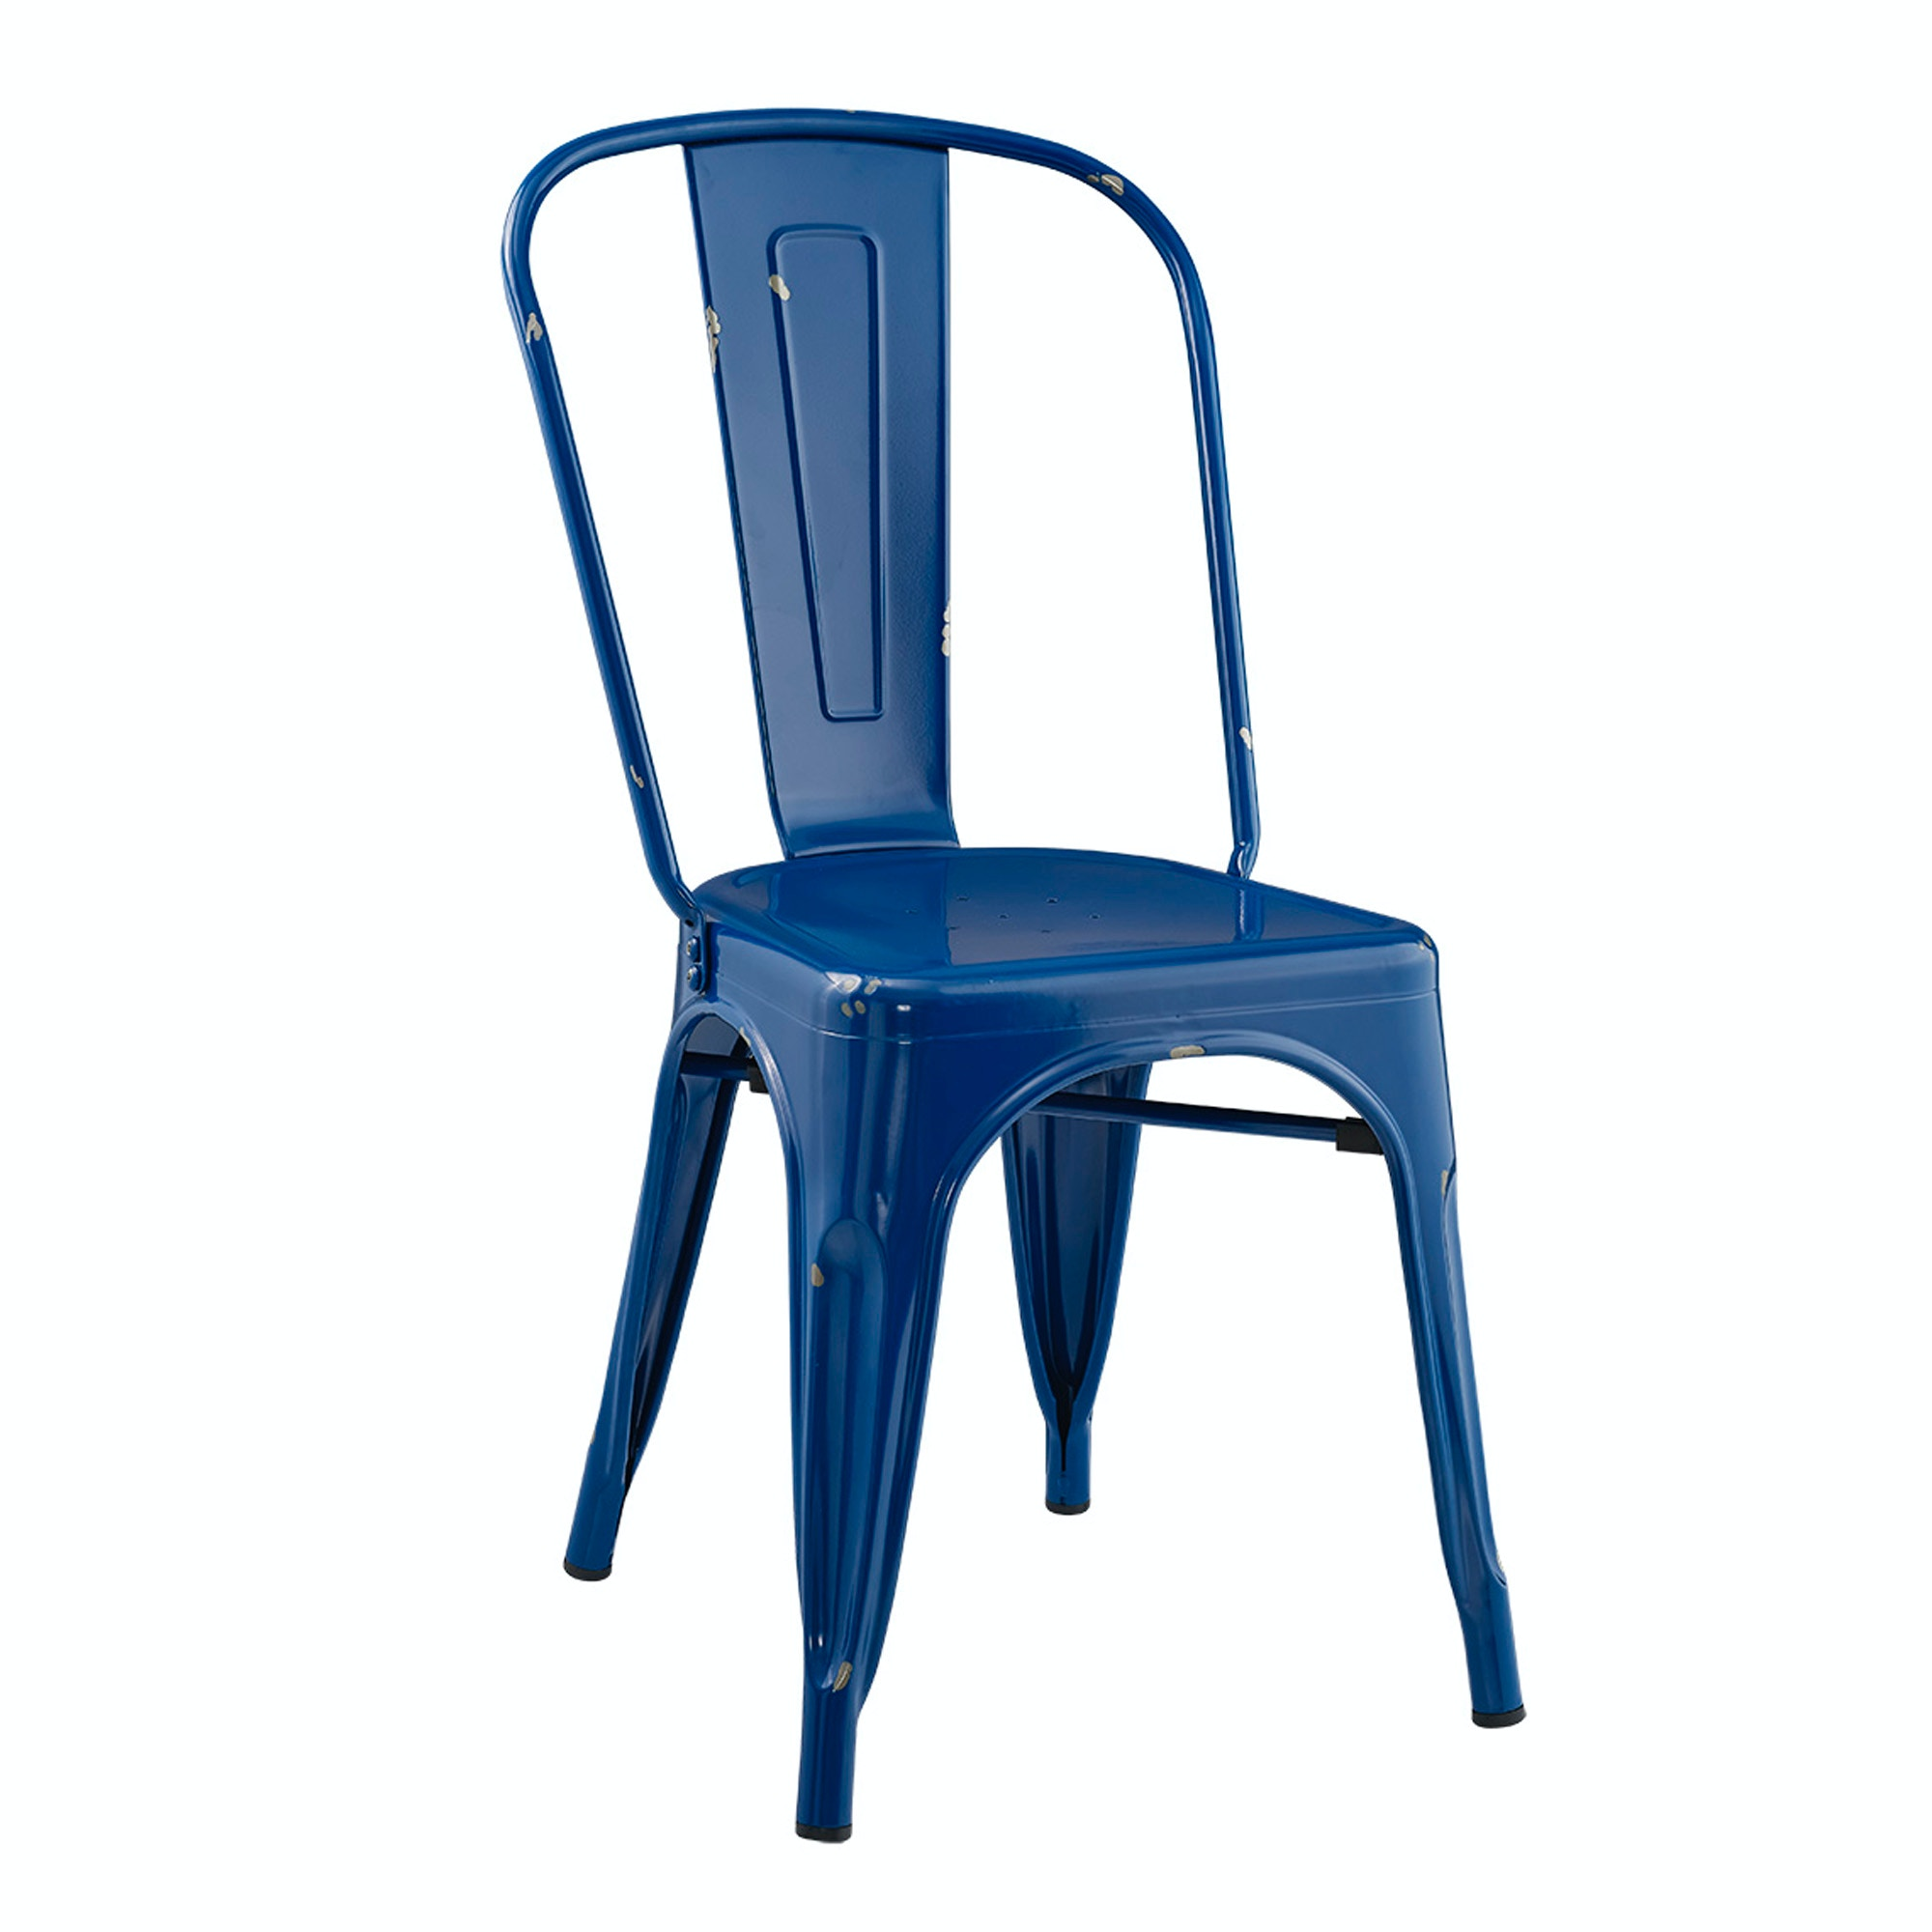 blue bistro chairs bedroom stool or chair stackable metal cafe navy wedch33mcnb ft myers